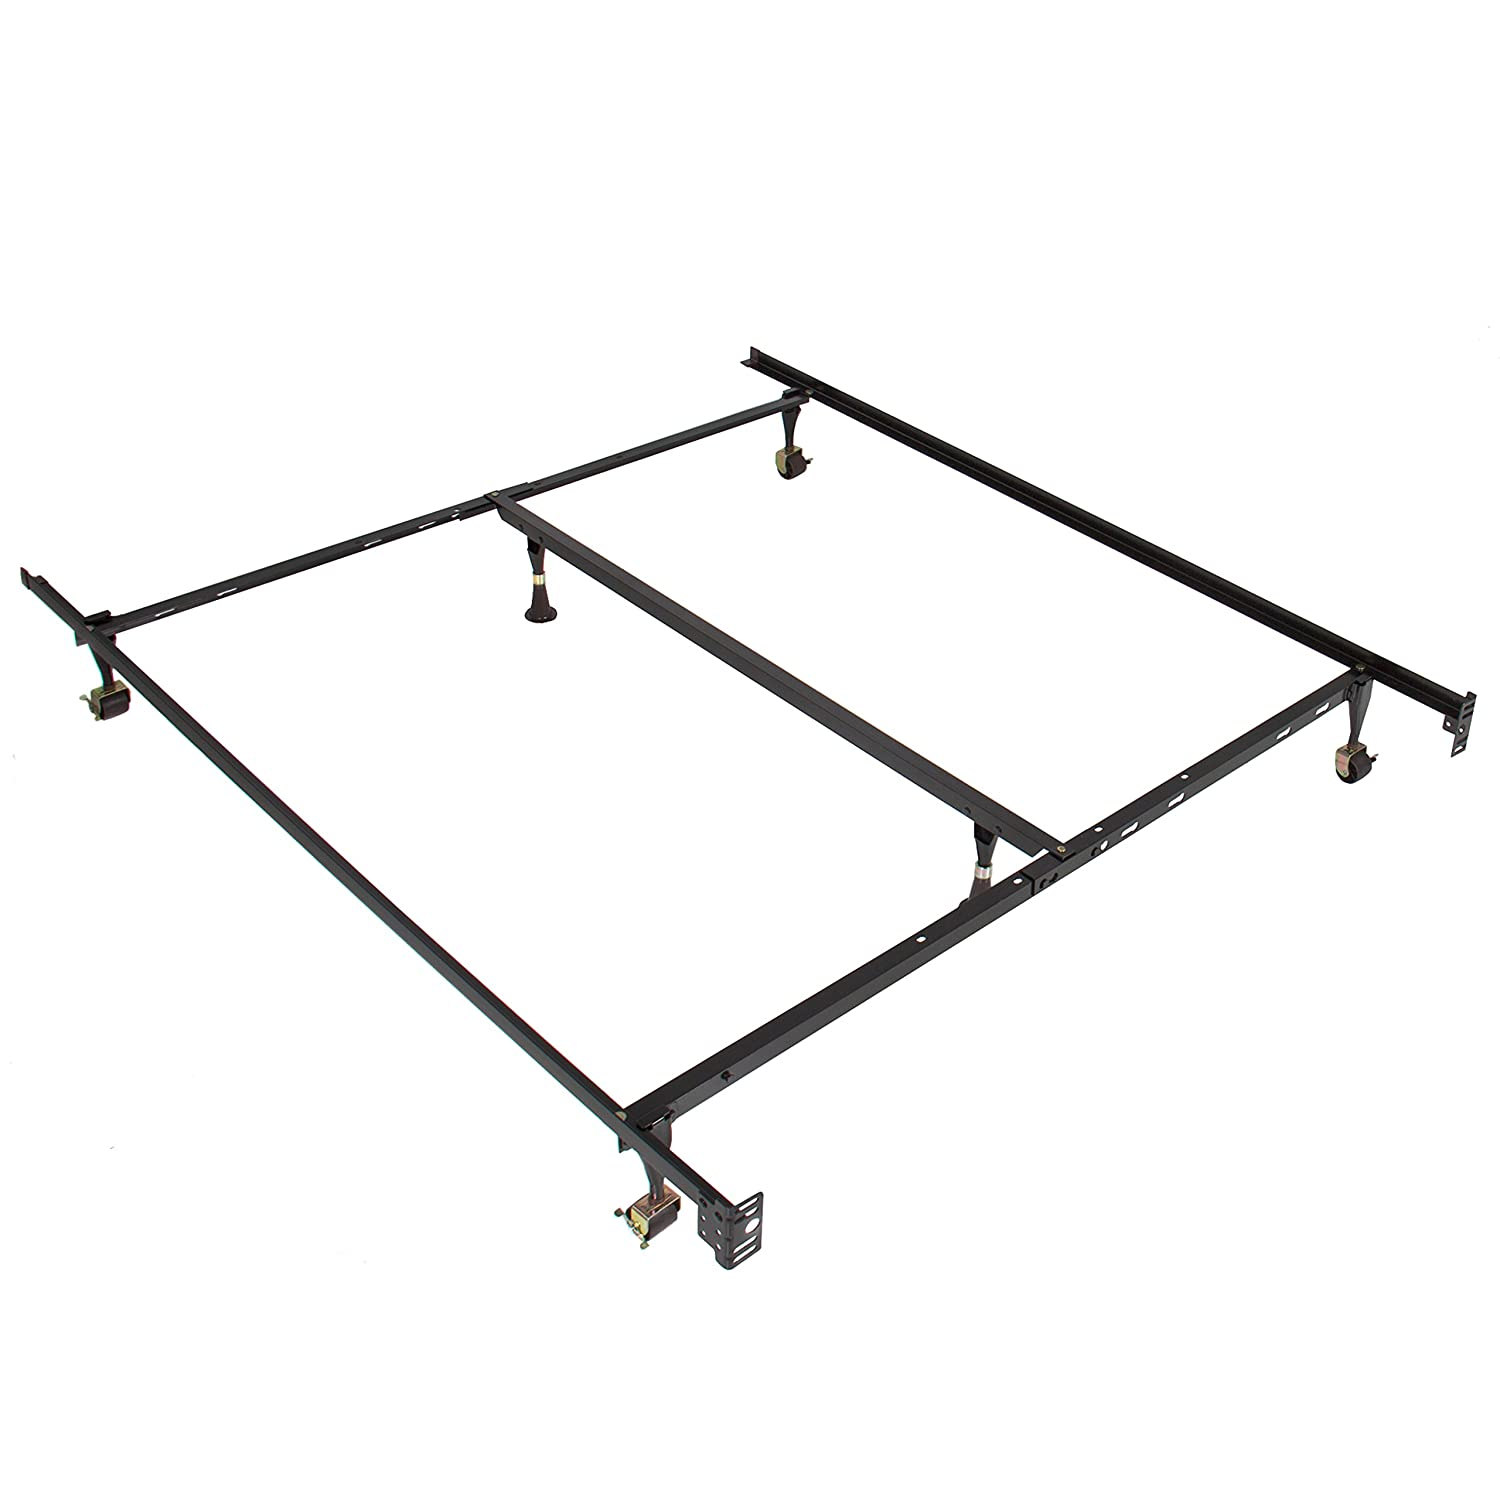 amazoncom best choice products metal bed frame adjustable queen full twin size w center support platform home u0026 kitchen - Mattress Frame